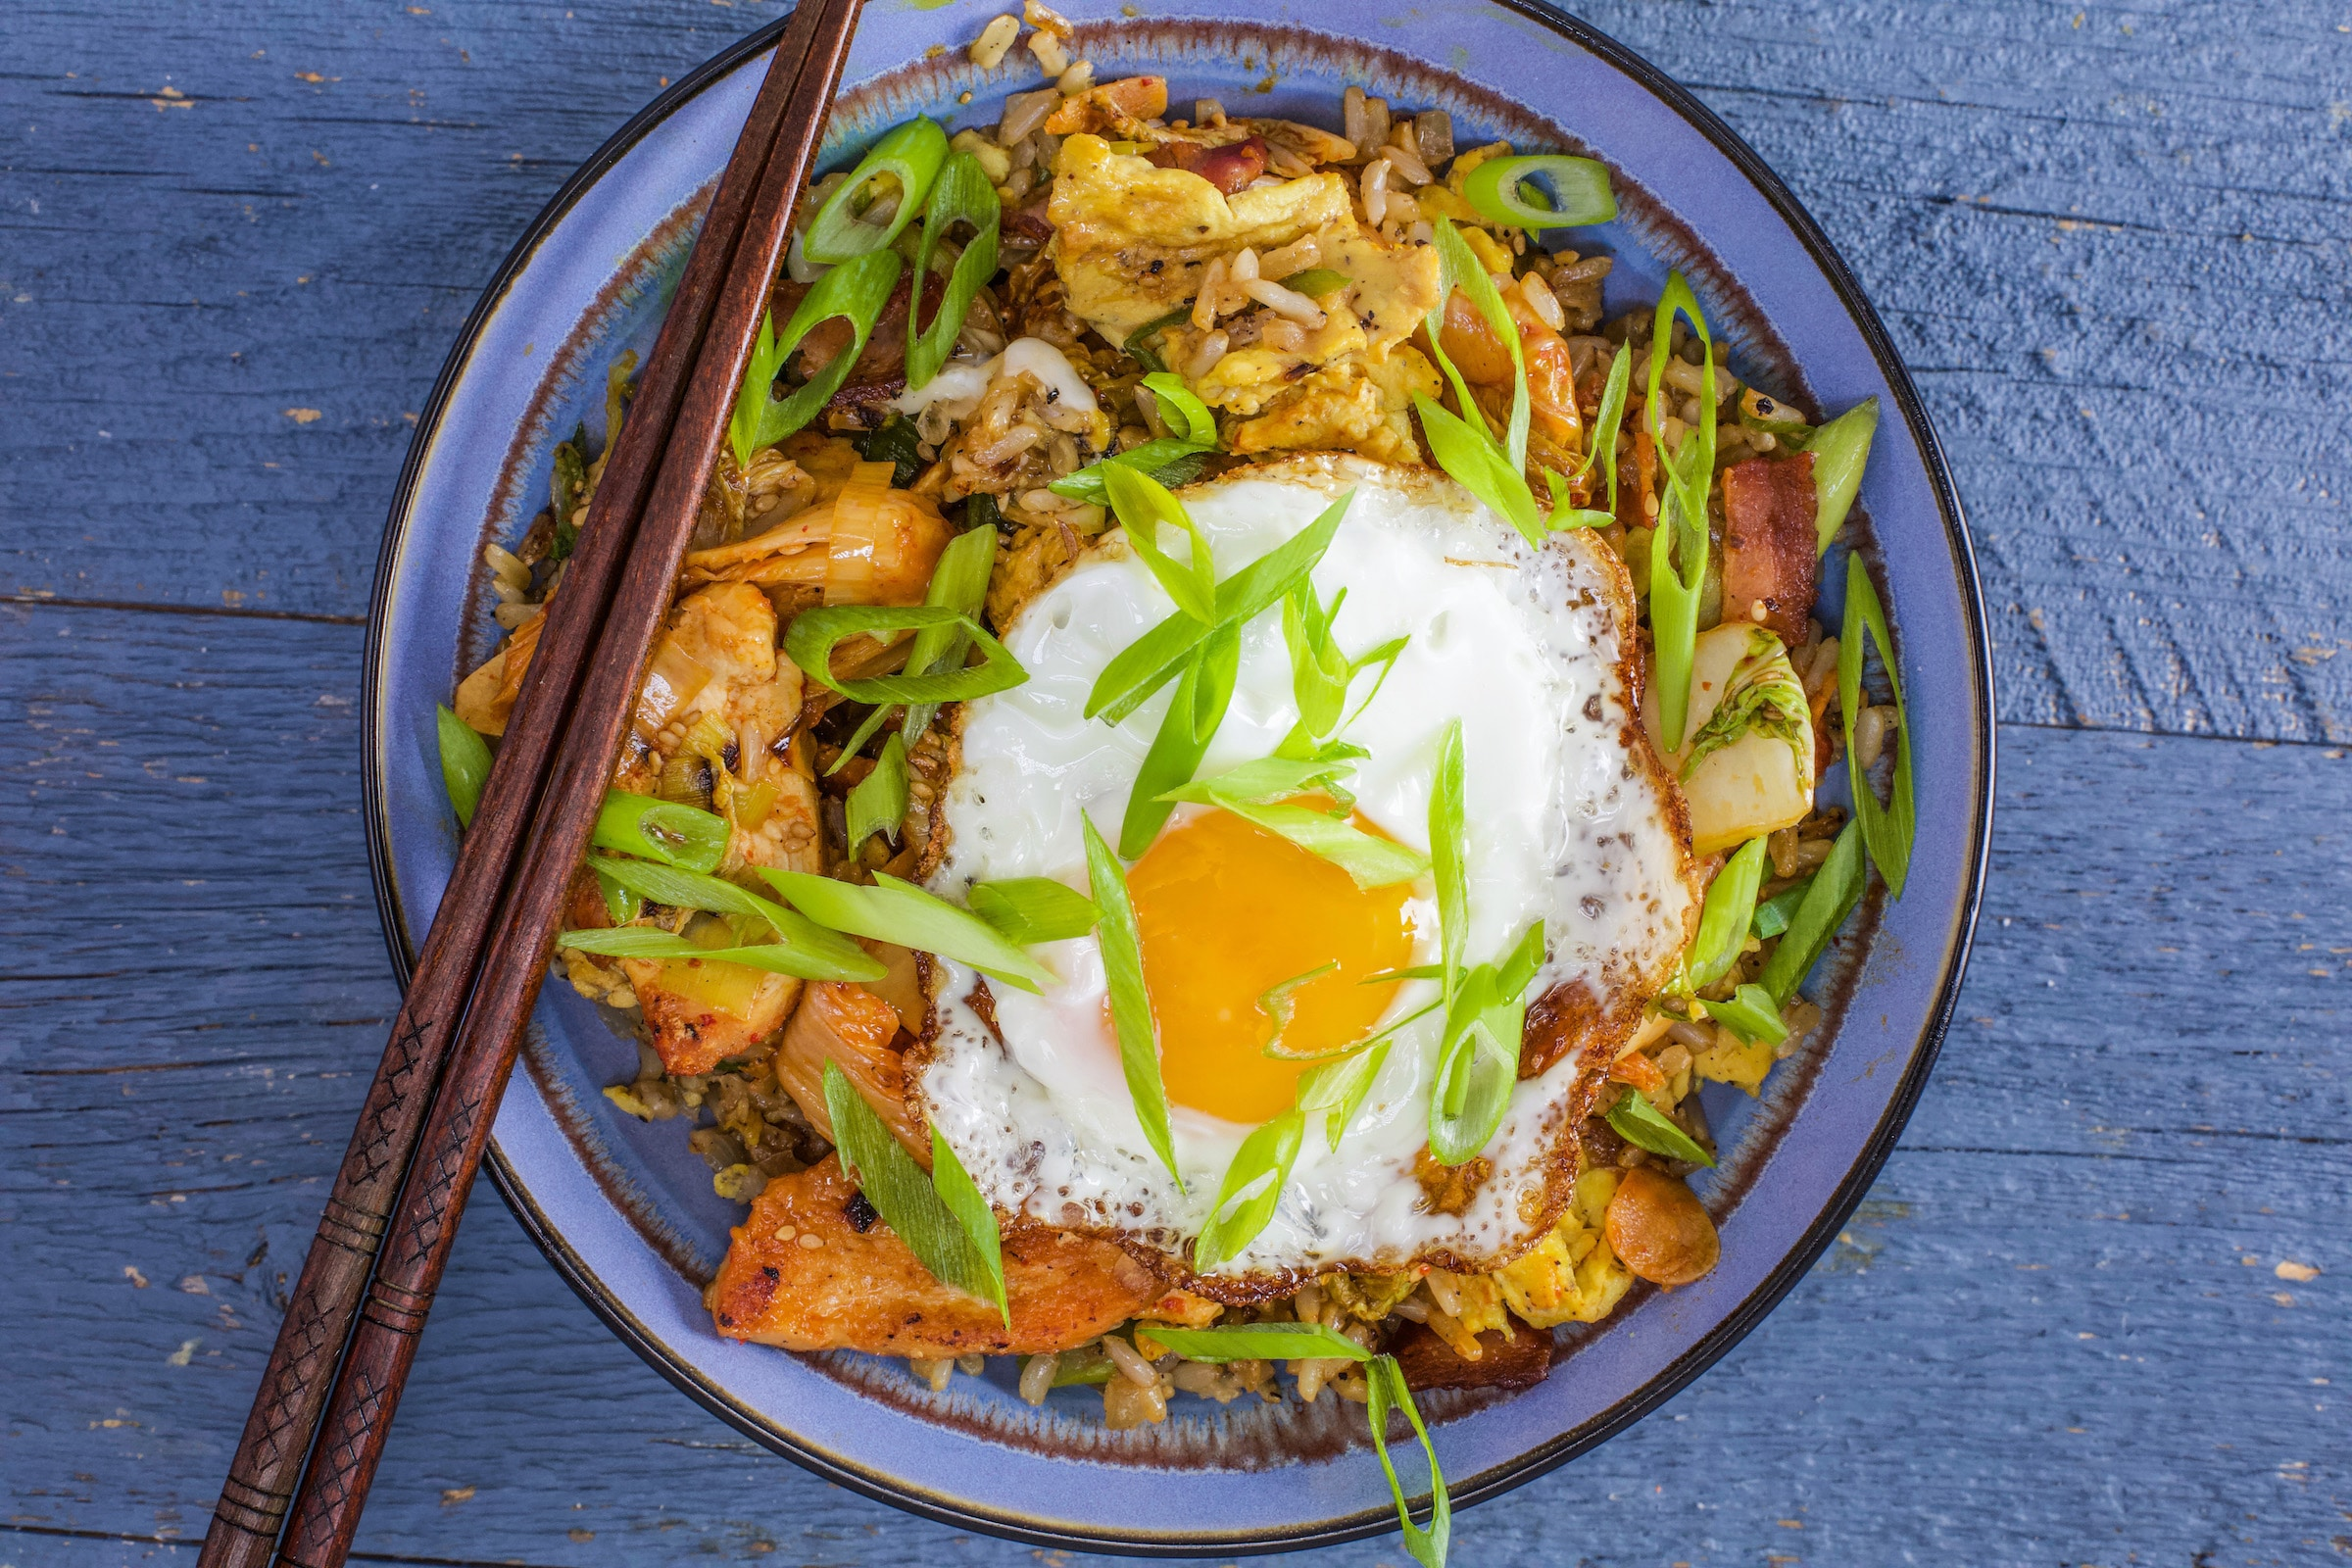 Rachael's Chicken and Kimchi Stir-Fry with Bacon and Egg Fried Rice